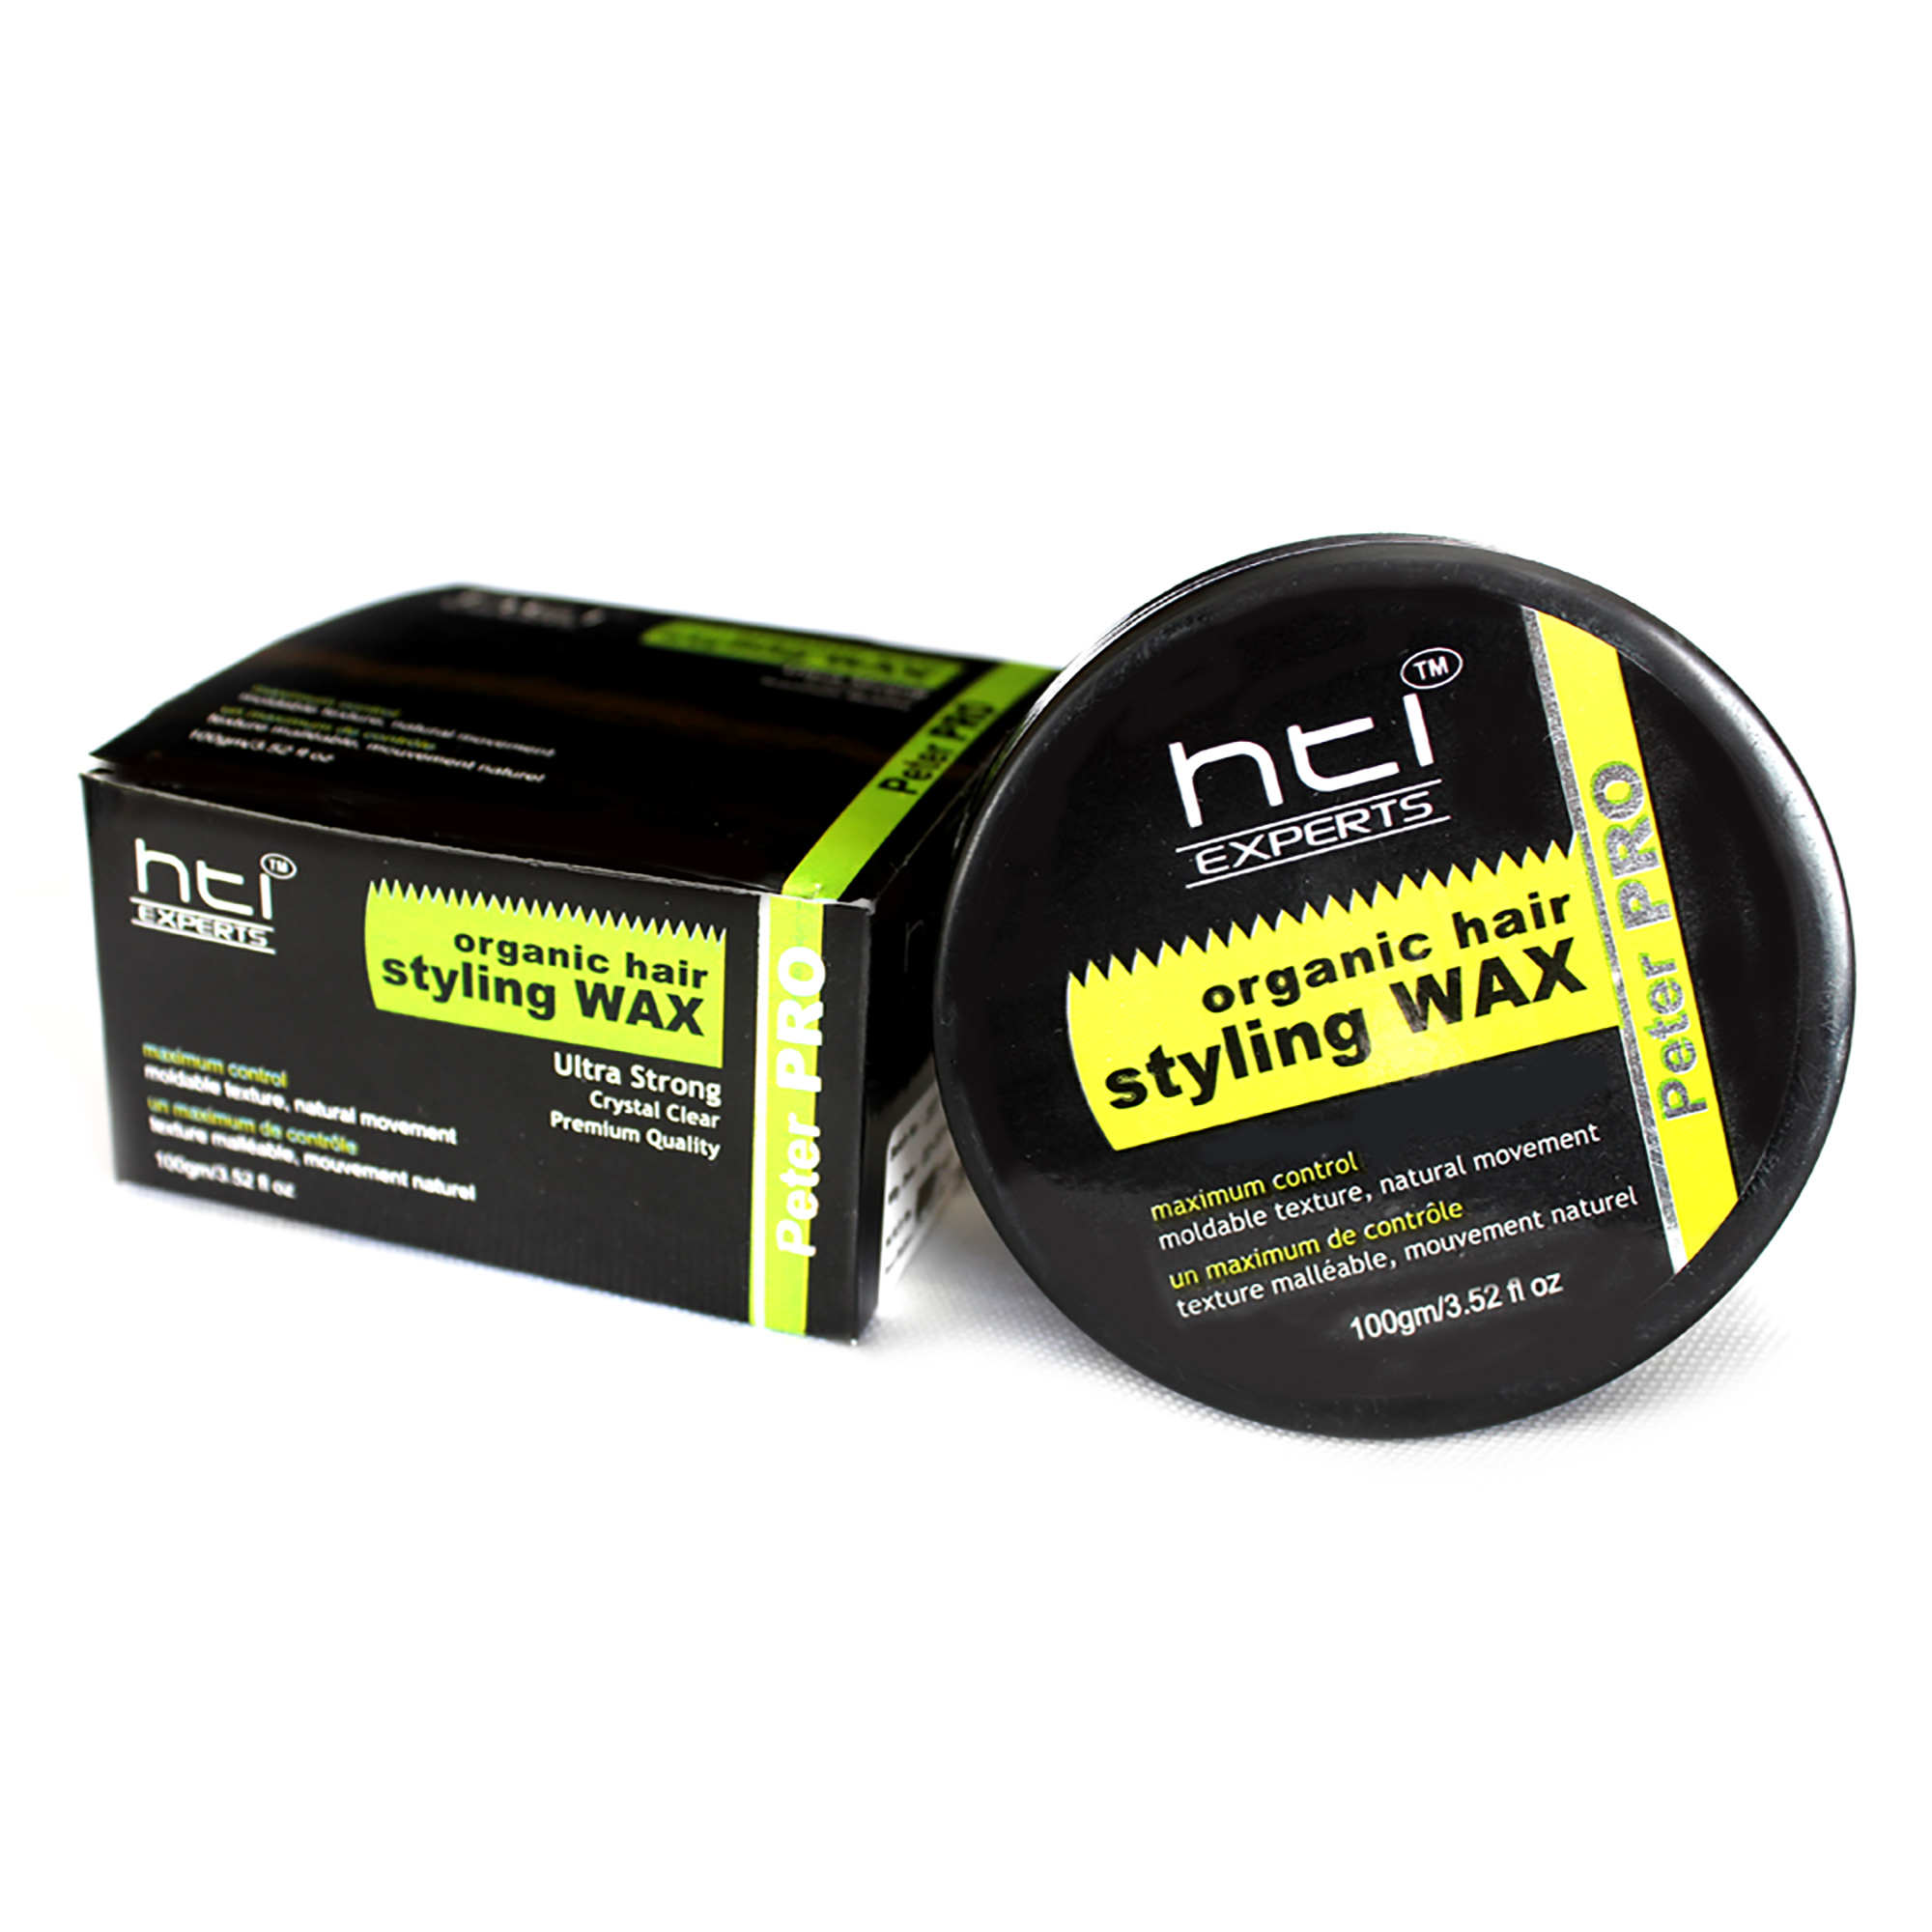 wax for hair styling organic hair styling wax ultra strong hti experts 2080